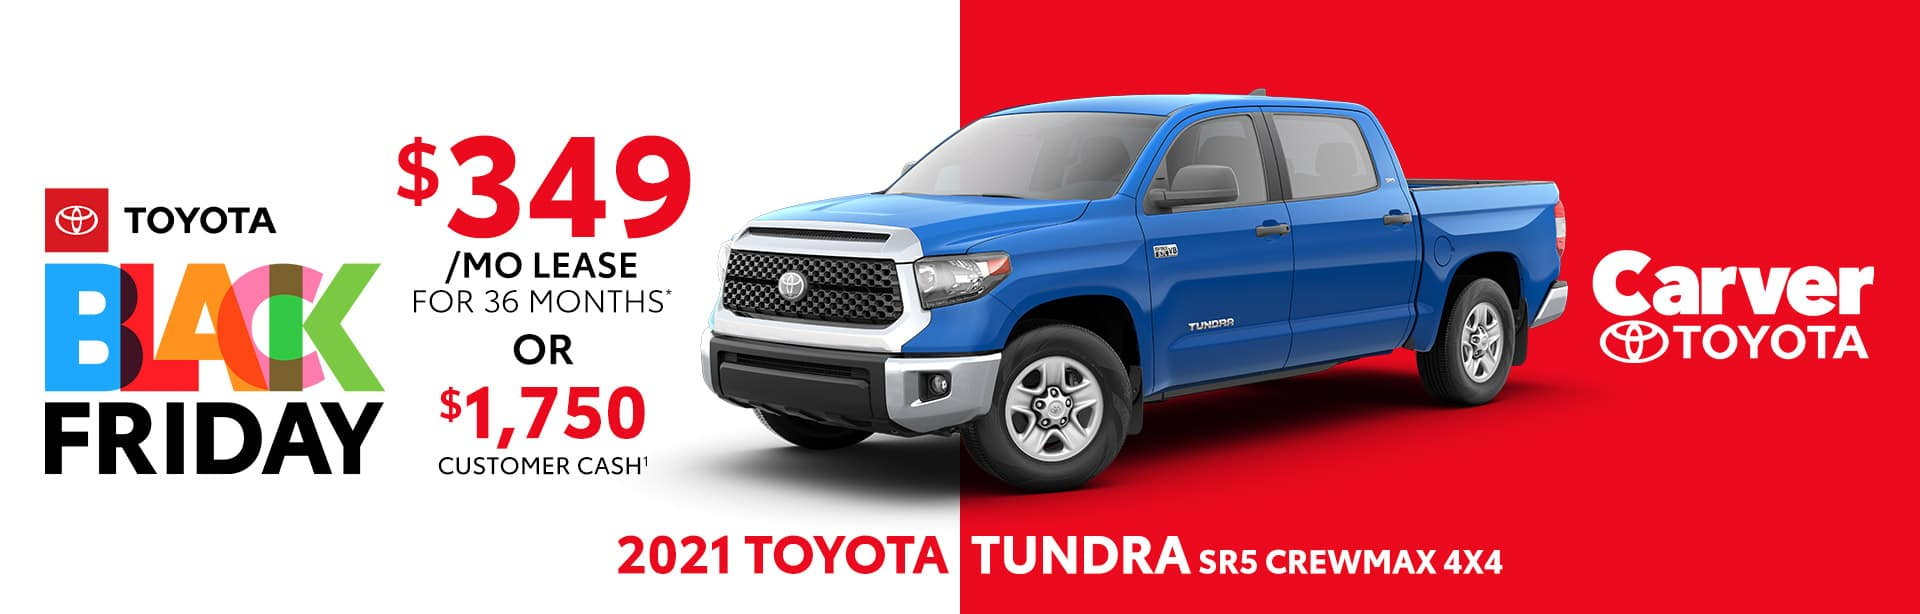 Best lease or customer cash deal on the new 2021 Toyota Tundra SR5 near Columbus, IN